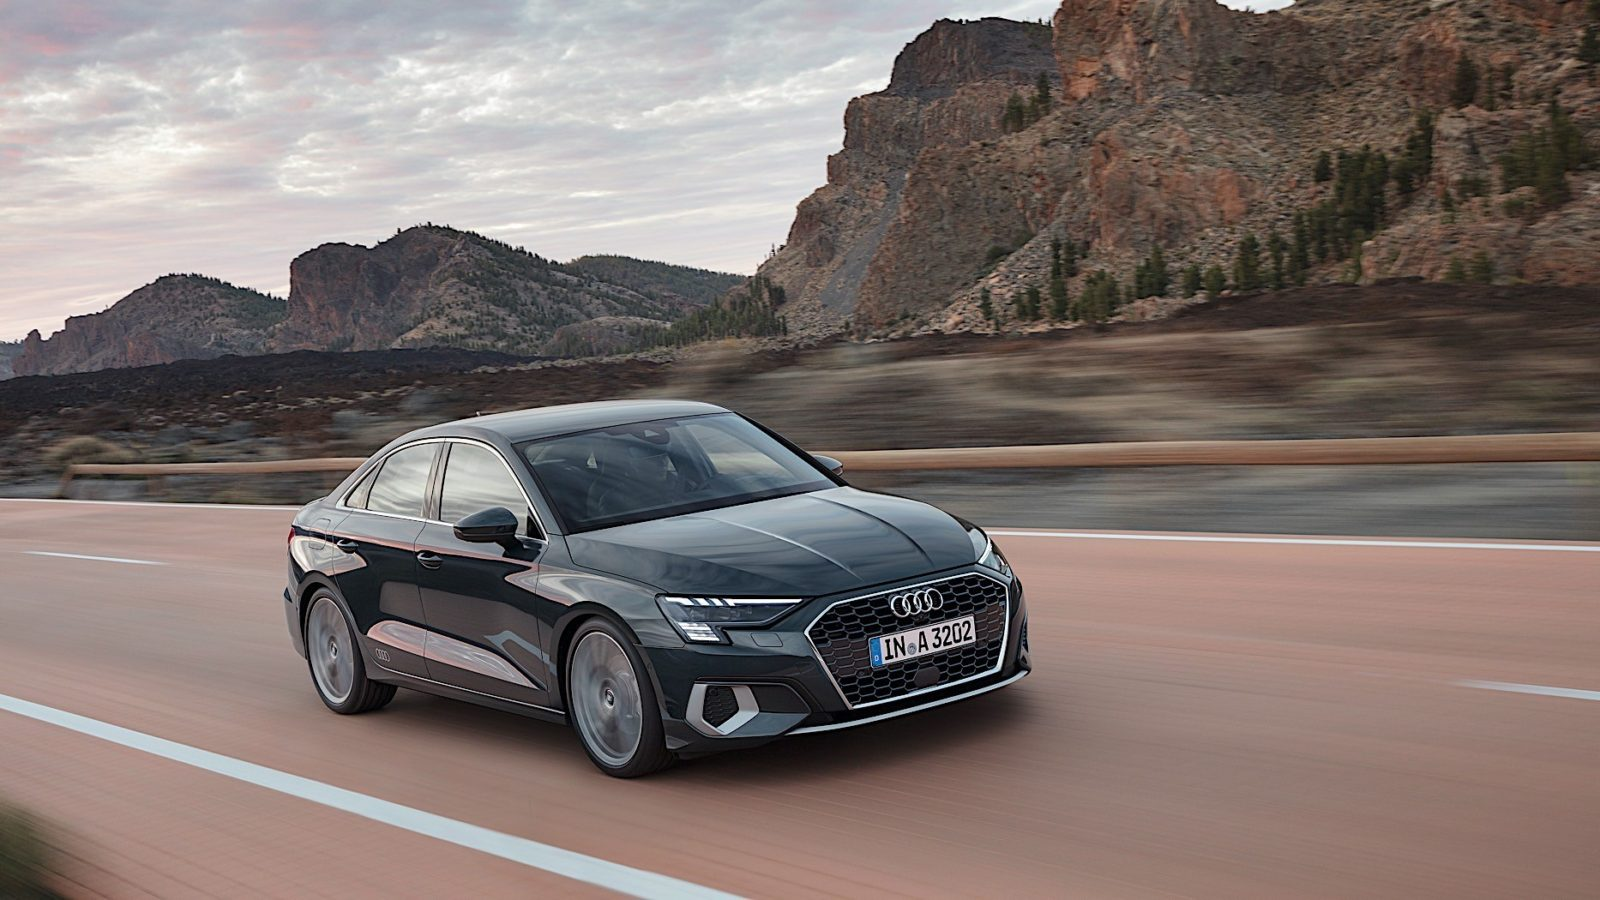 2022-audi-a3-sedan-priced-in-the-us.-at-$33,900